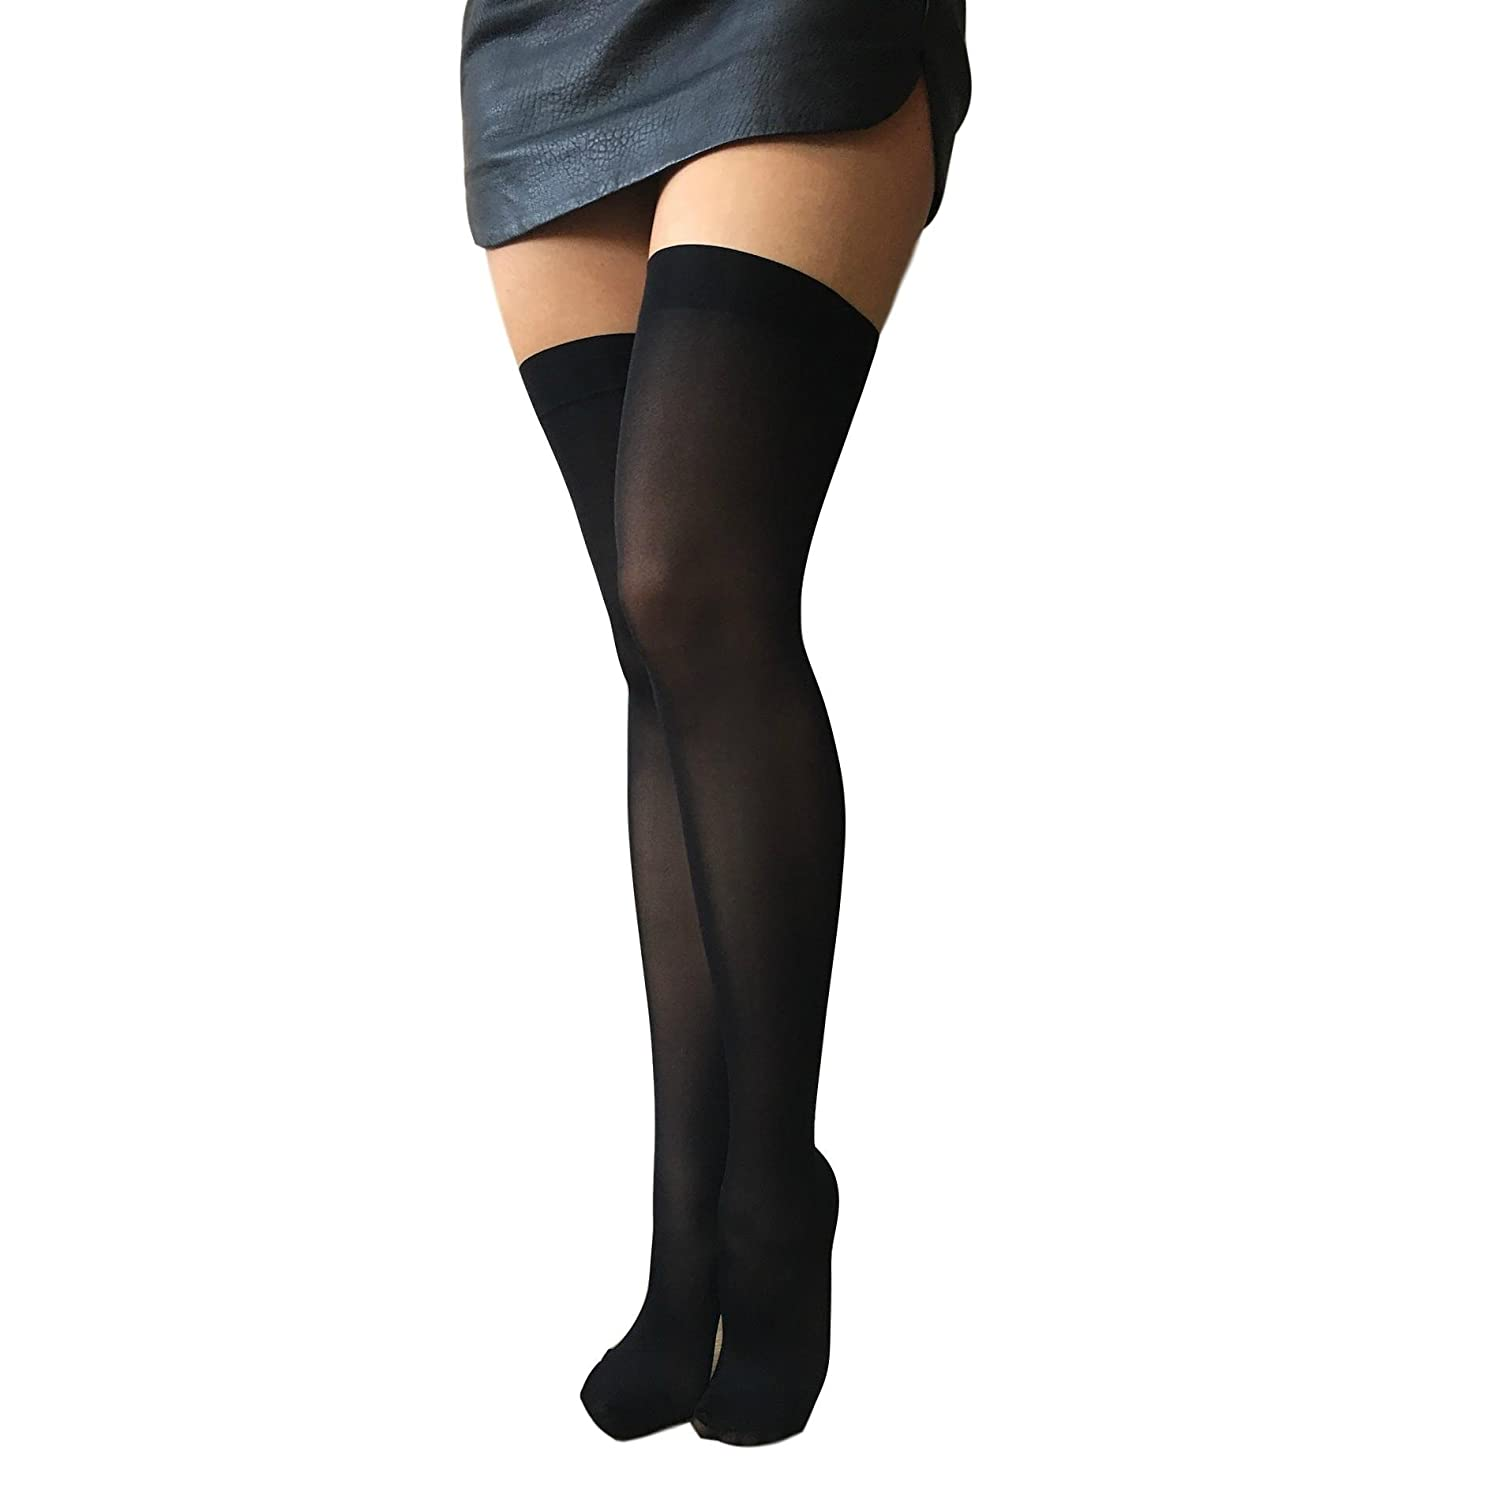 cc84058e0af Gipsy 50 Denier Invisible Top Hold Ups Black One Size  Amazon.co.uk   Clothing